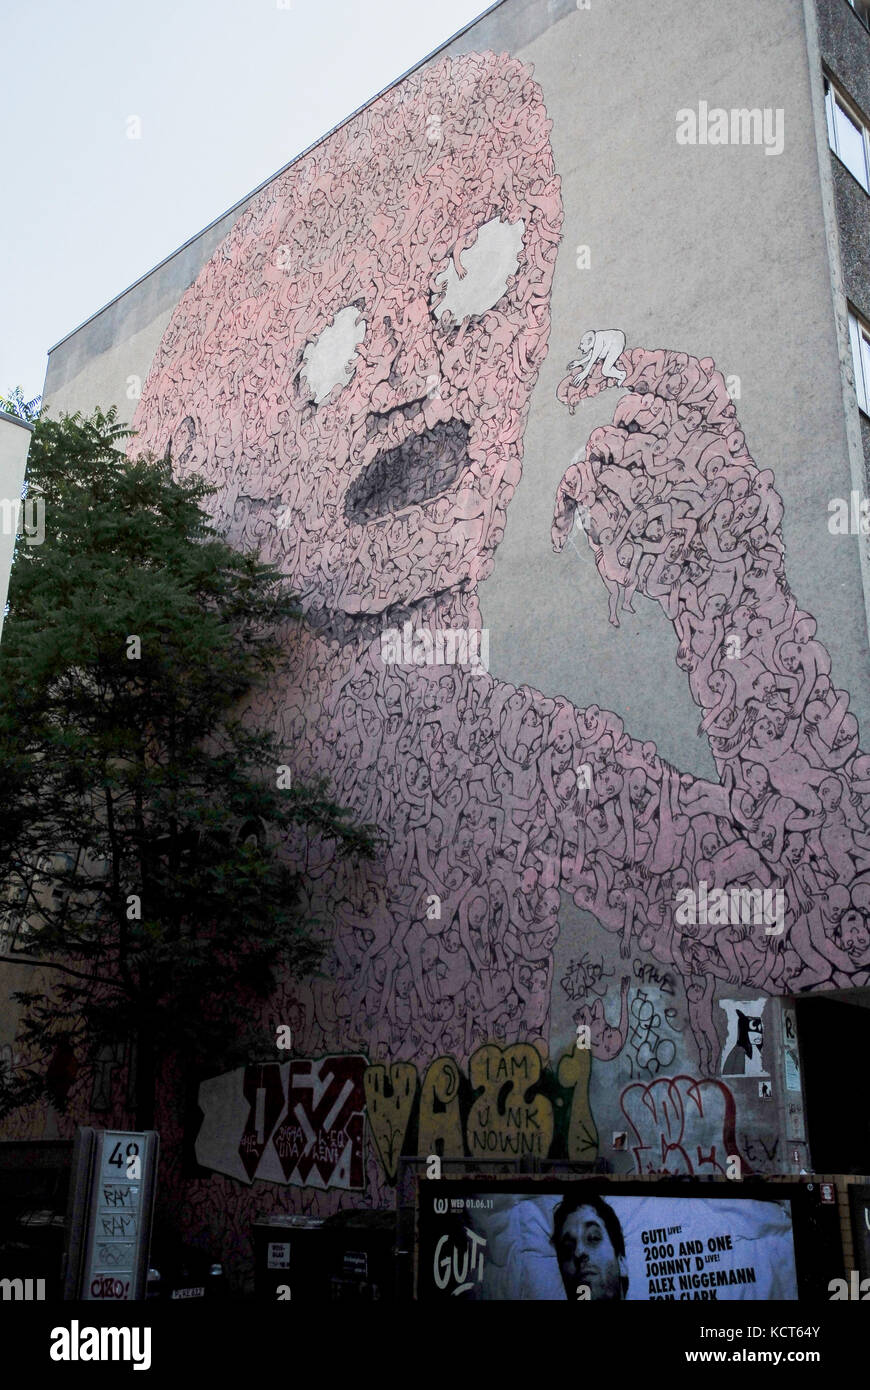 BERLIN-MAY 31: a graffiti called Leviathan by the artist Blu in the neighborhood of Kreuzberg,on May 31,2011. - Stock Image